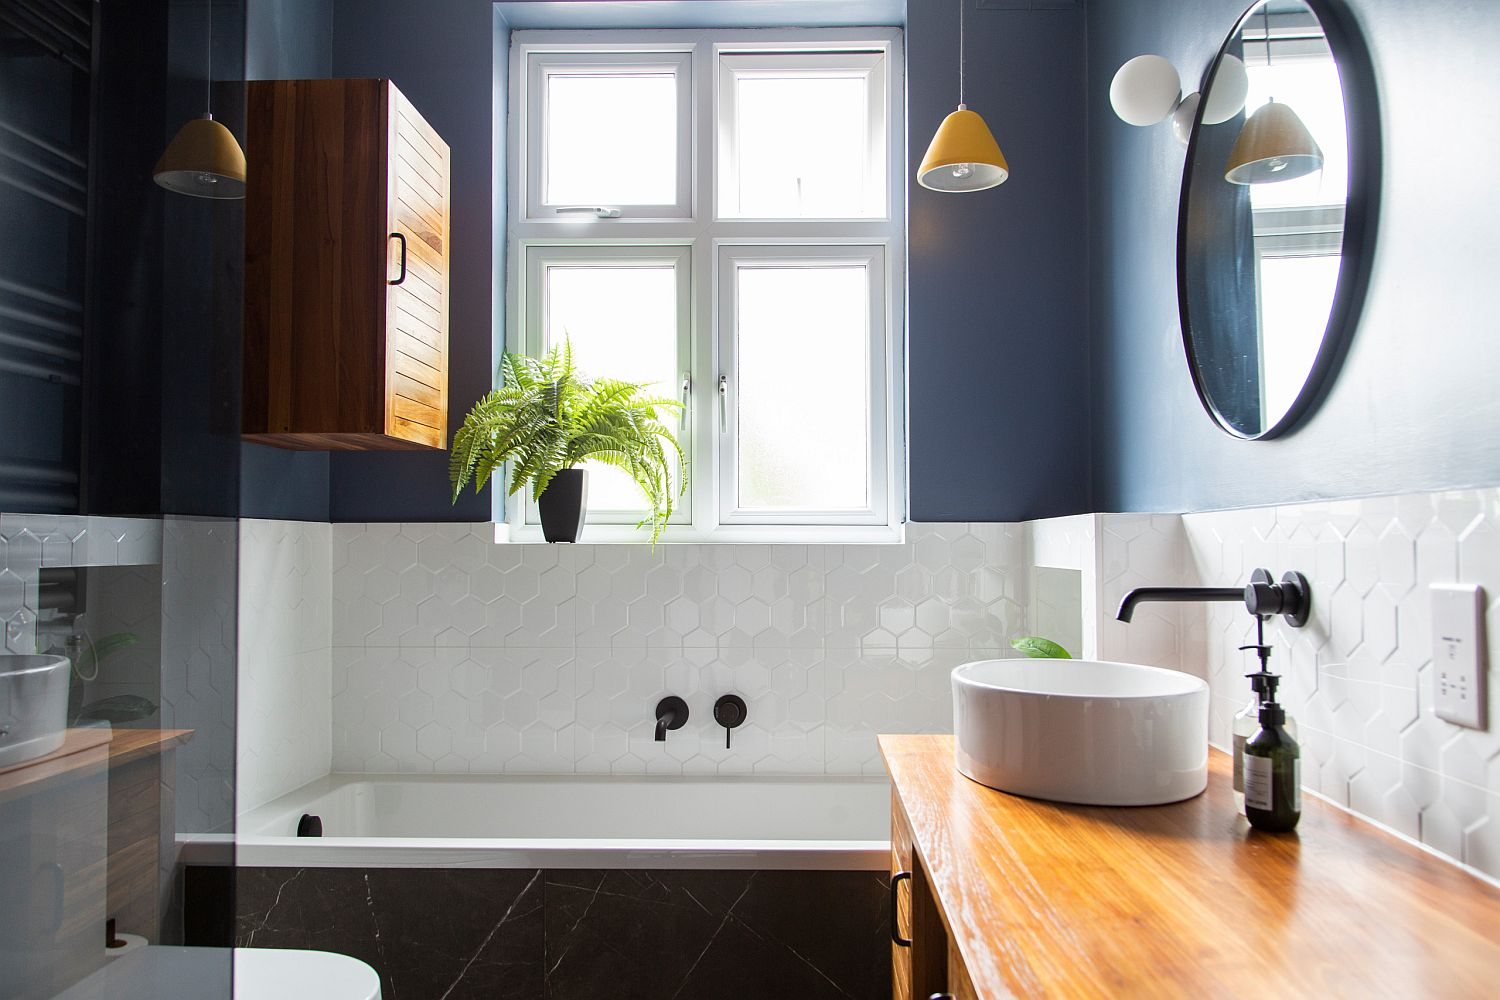 Blue walls, white tile and warm wooden vanity create a delightful balance of elements inside this London bathroom